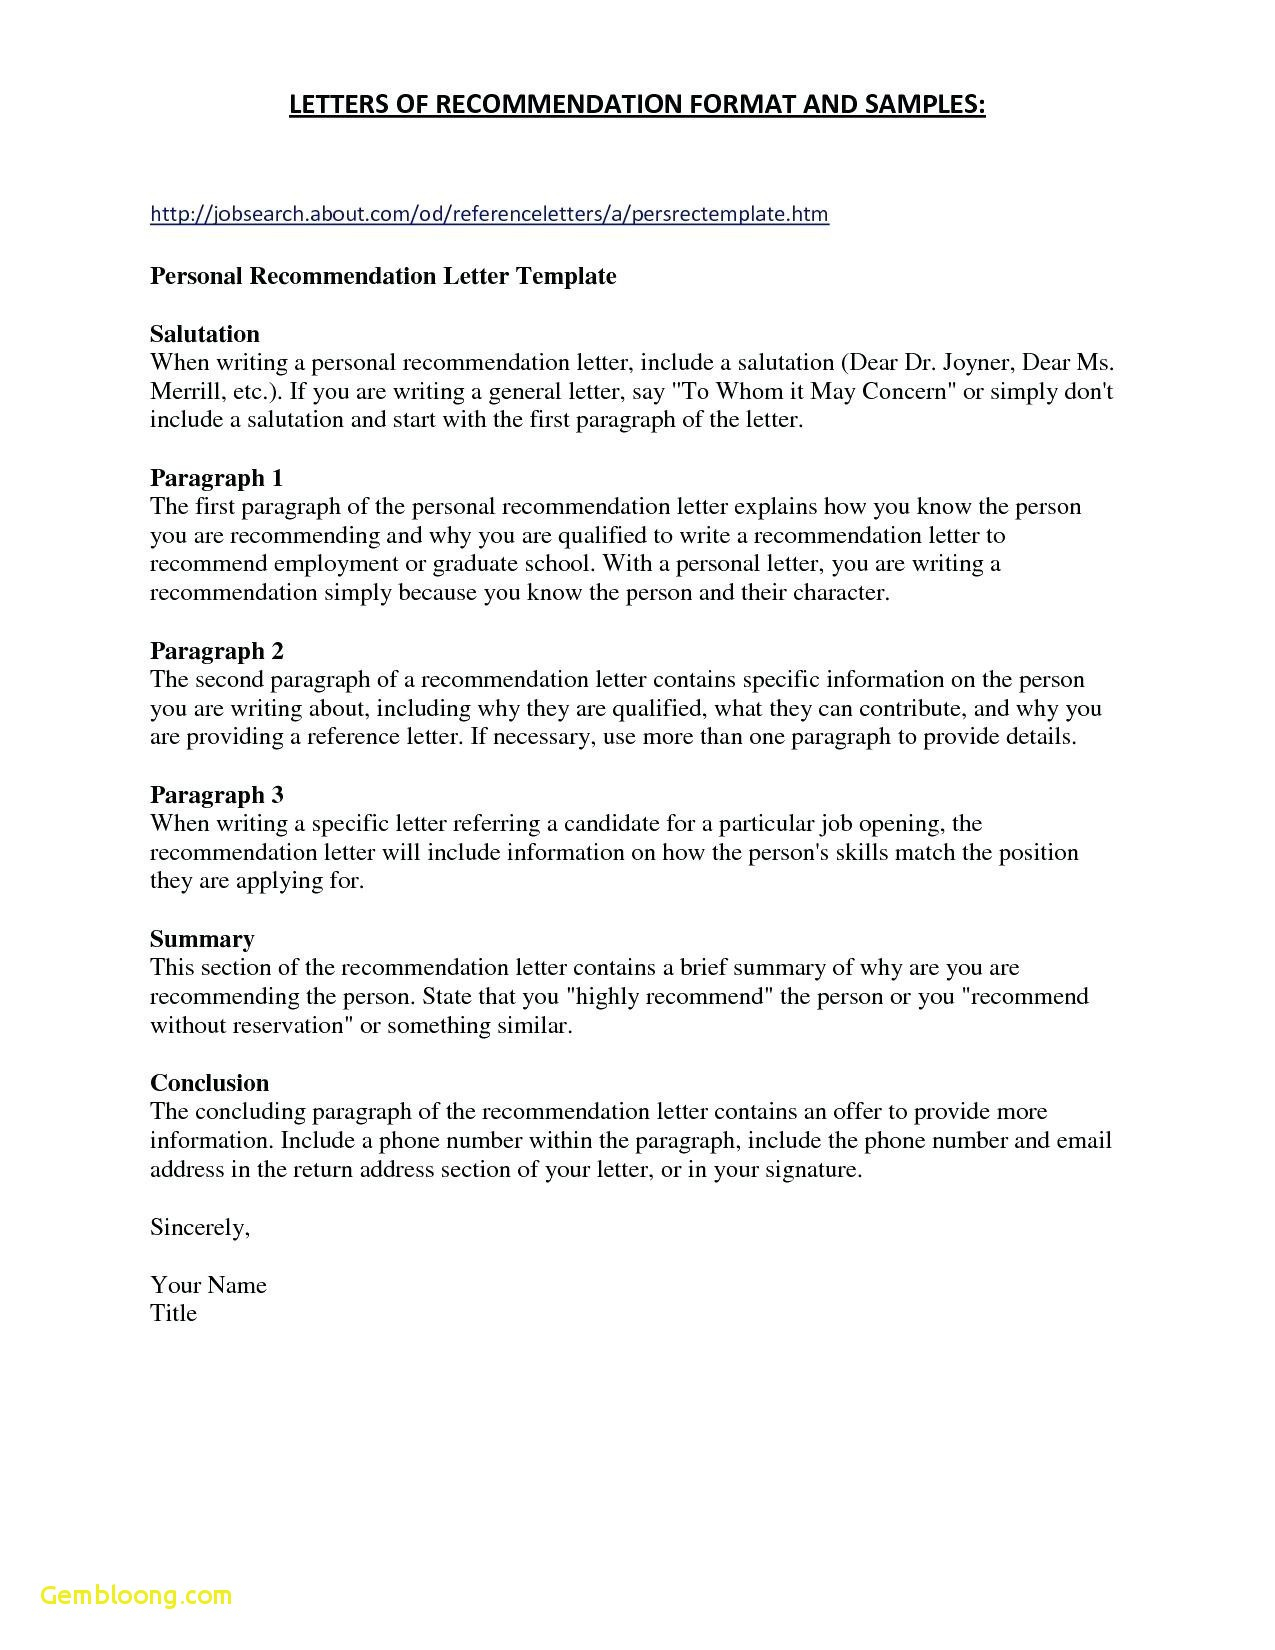 Personal Recommendation Letter Template - Reference Letter format Personal Fresh References for Resume